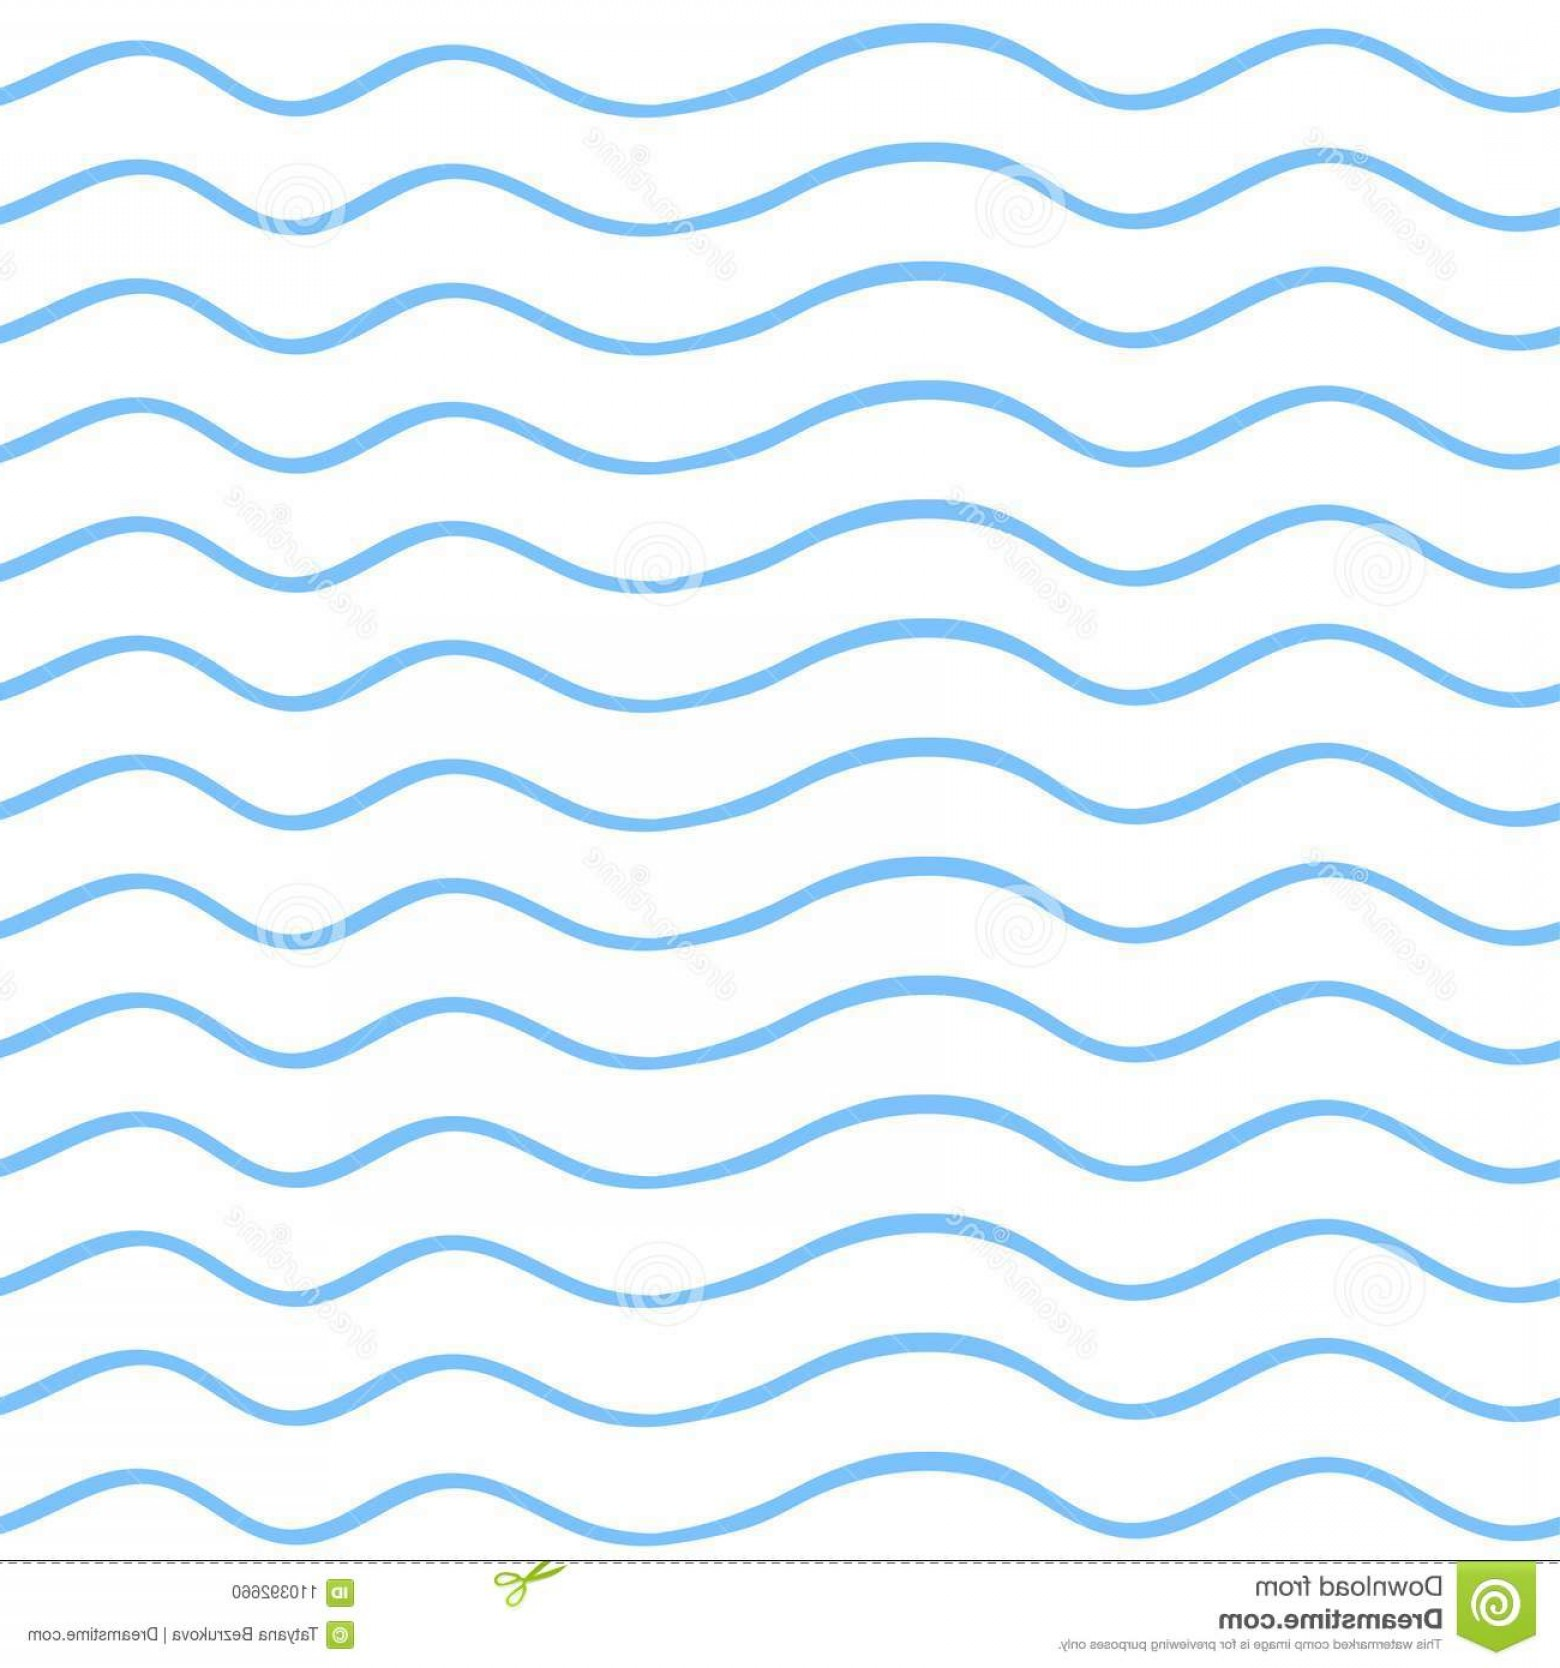 Wavy Line Illustrator Vector: Seamless Background Blue Wavy Lines Vector Illustration Seamless Background Blue Wavy Lines Vector Illustration Image